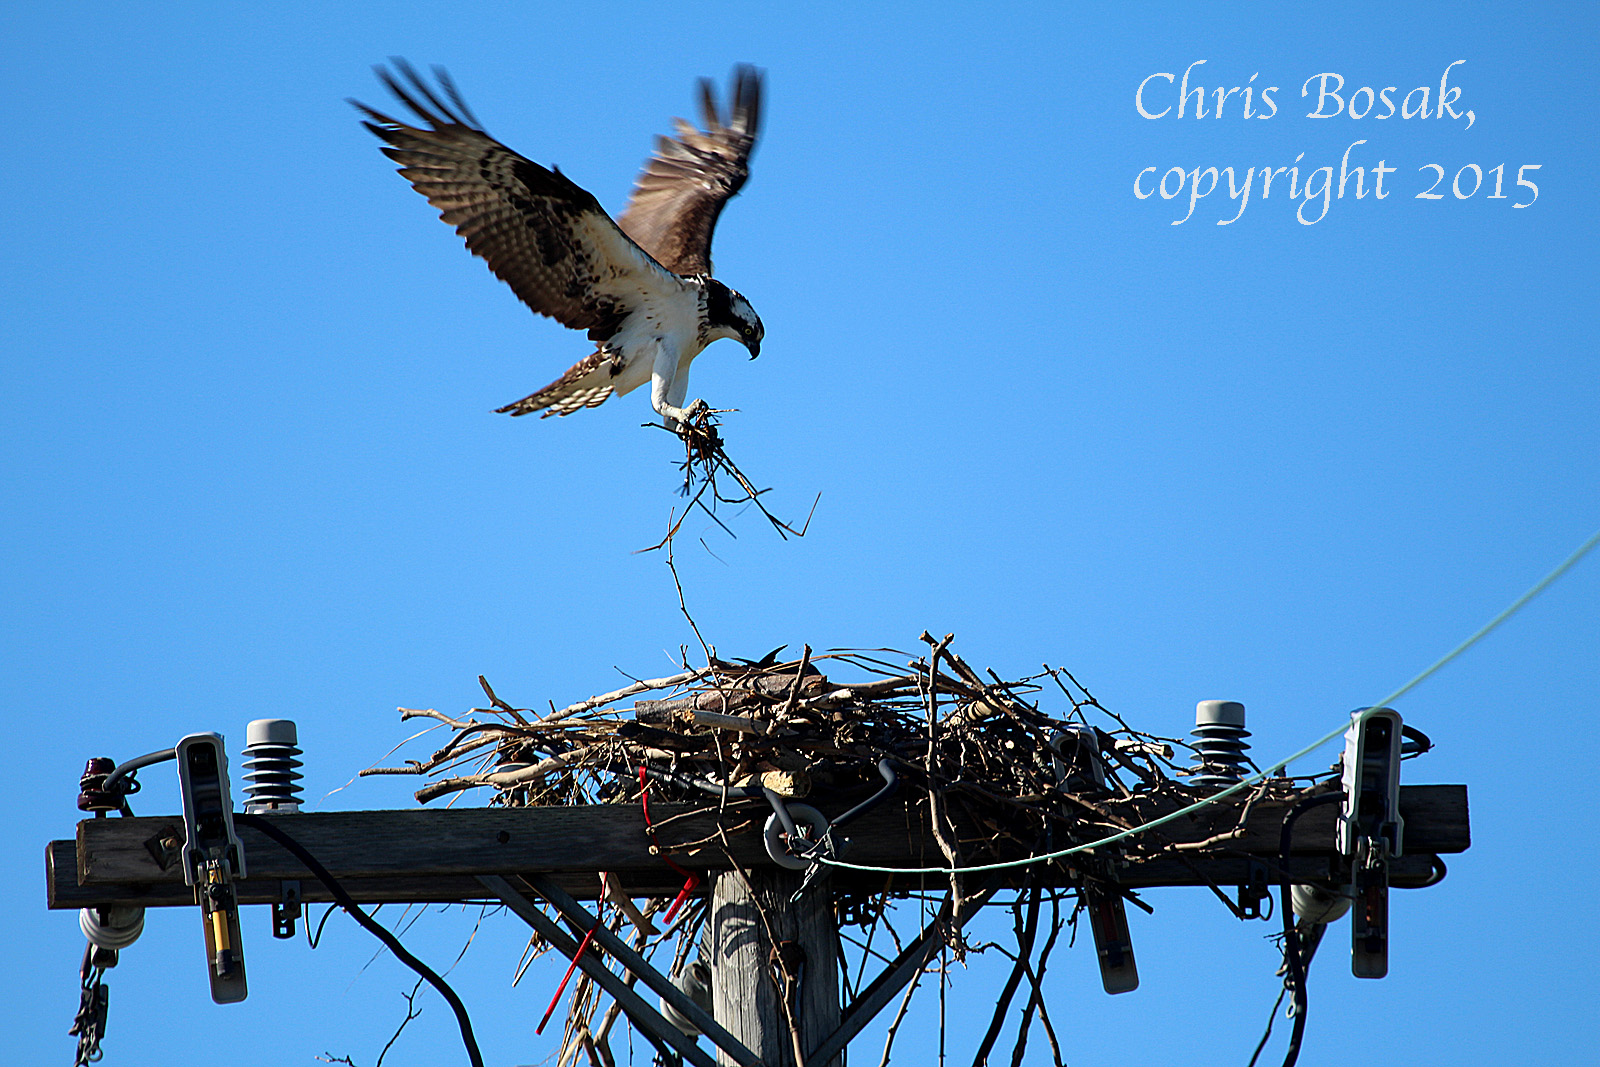 Photo by Chrisi Bosak An Osprey flies into its nest with nesting material at Veterans Park in Norwalk, Conn., April 29, 2015.